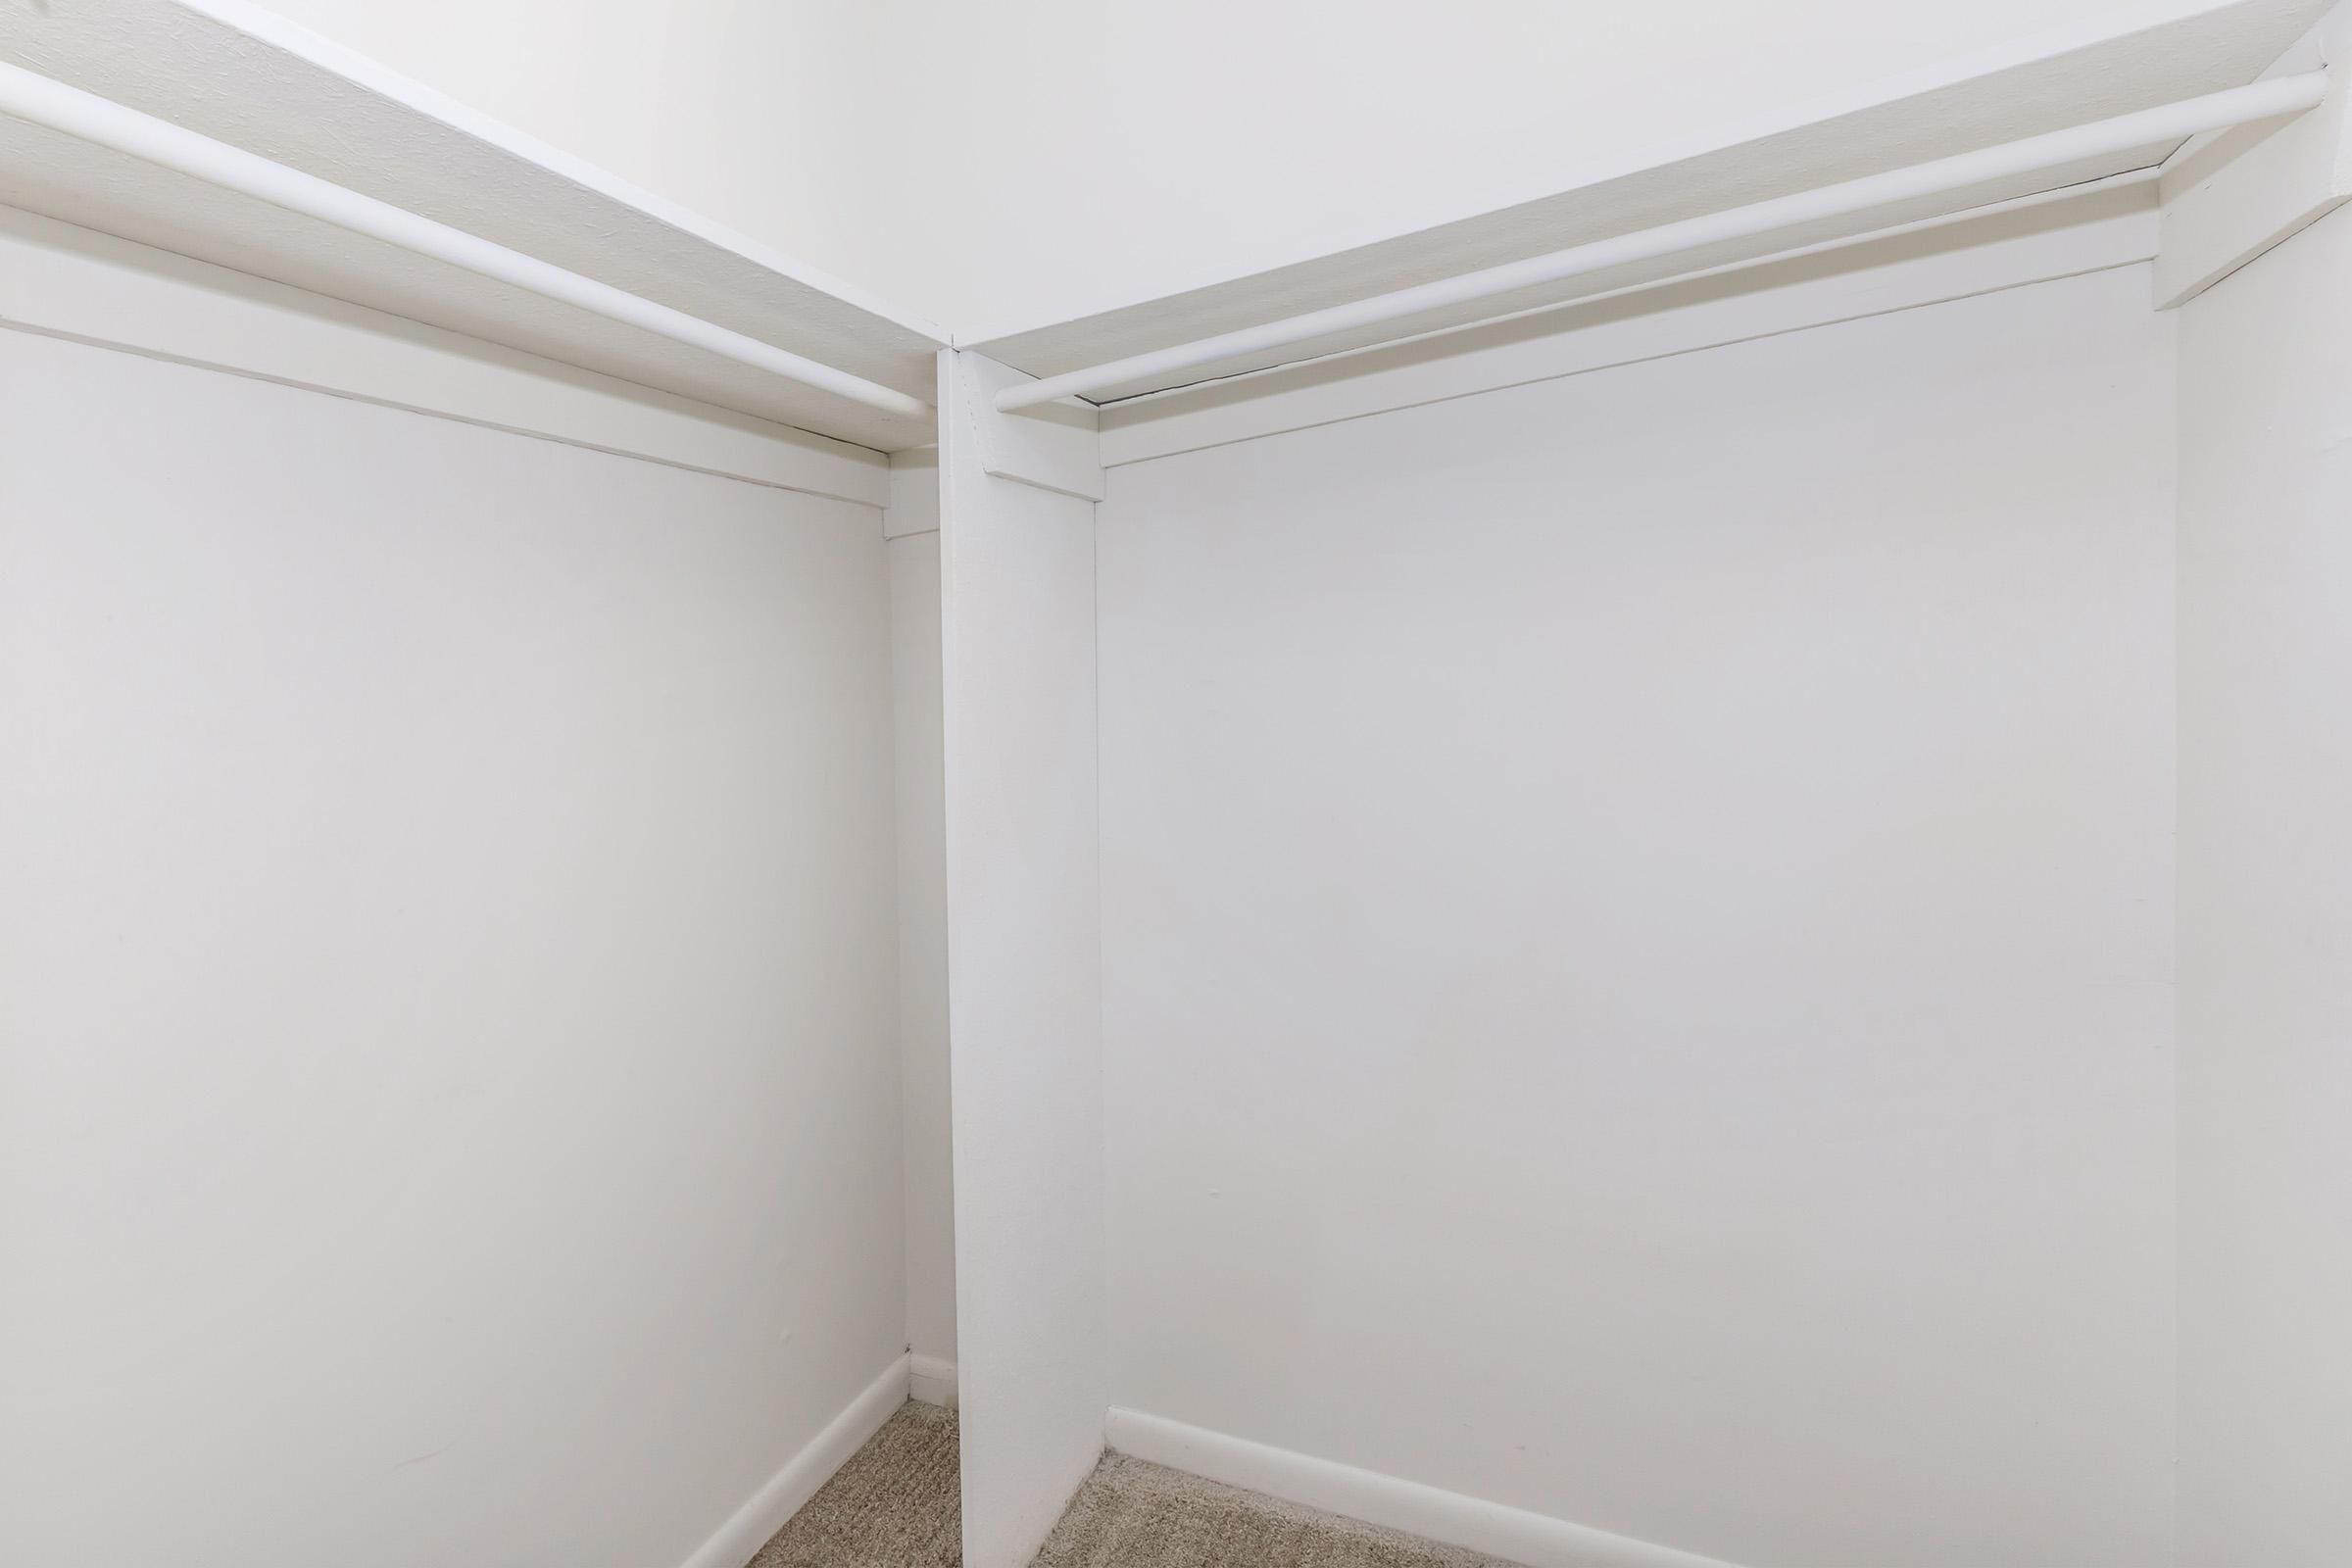 Spacious walk-in closts